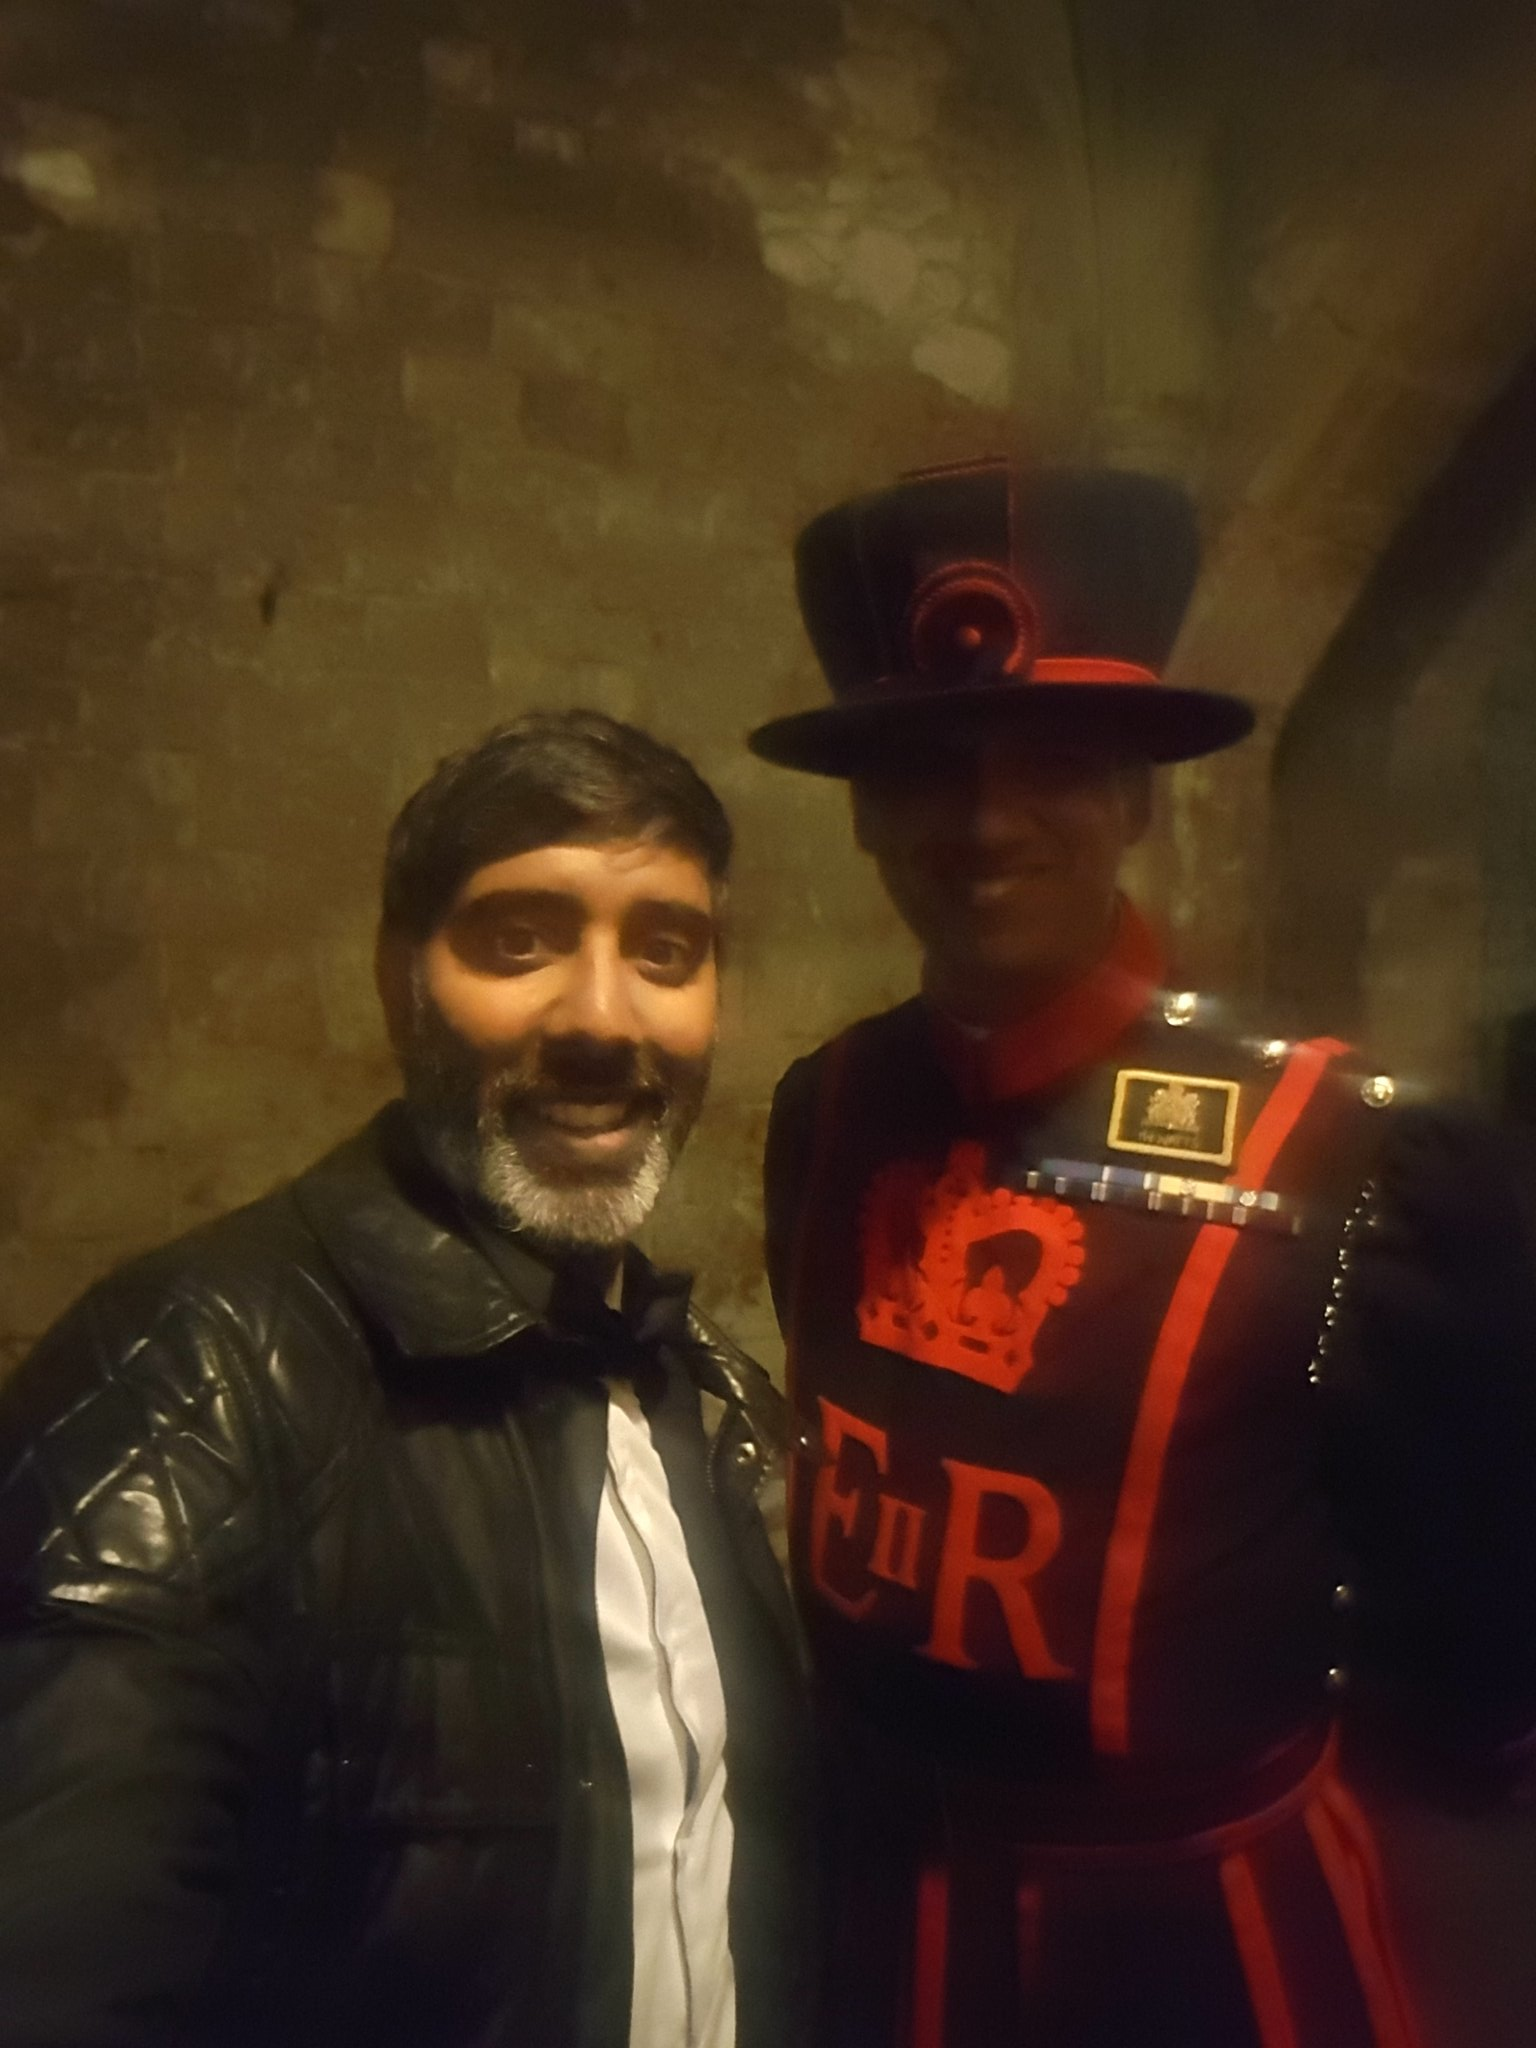 After my dinner with @BritishArmy top brass at the Tower Of London had to have this pic. https://t.co/1XNiseUehP